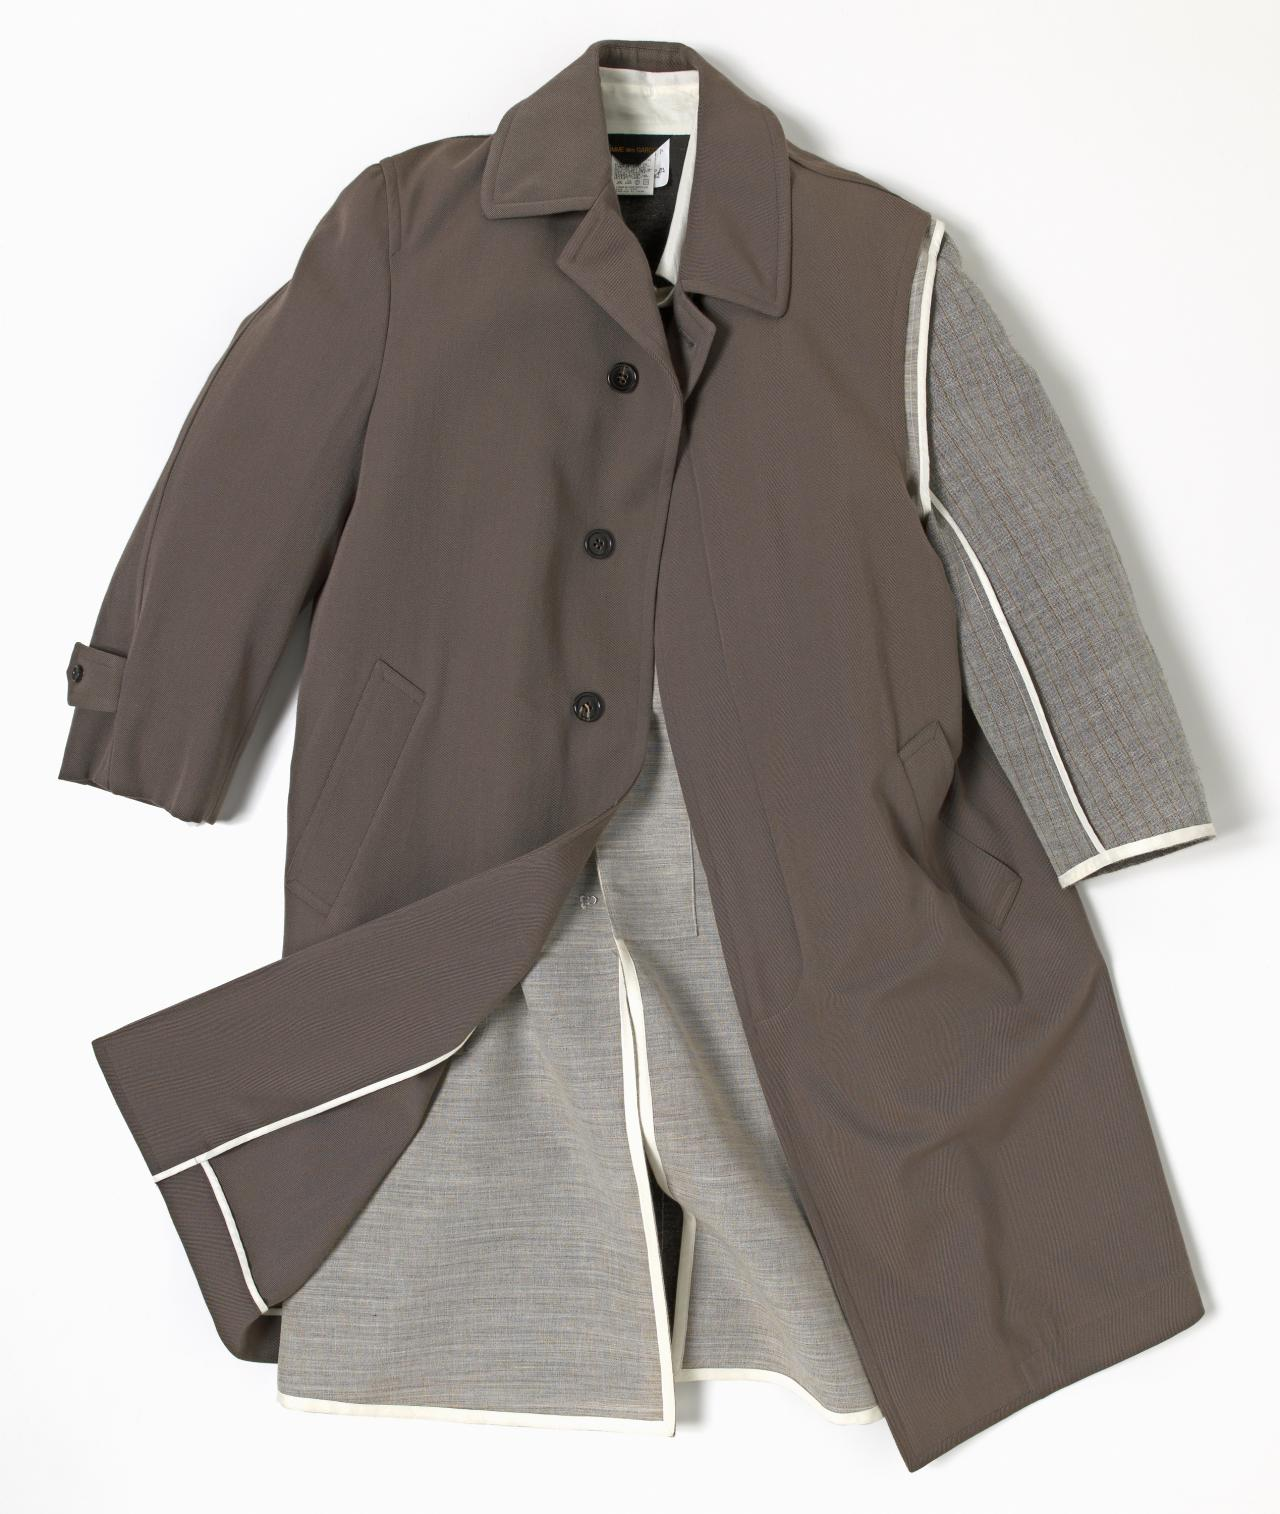 47d0cf37c775 Outfit compromising one arm coat and lopsided skirt